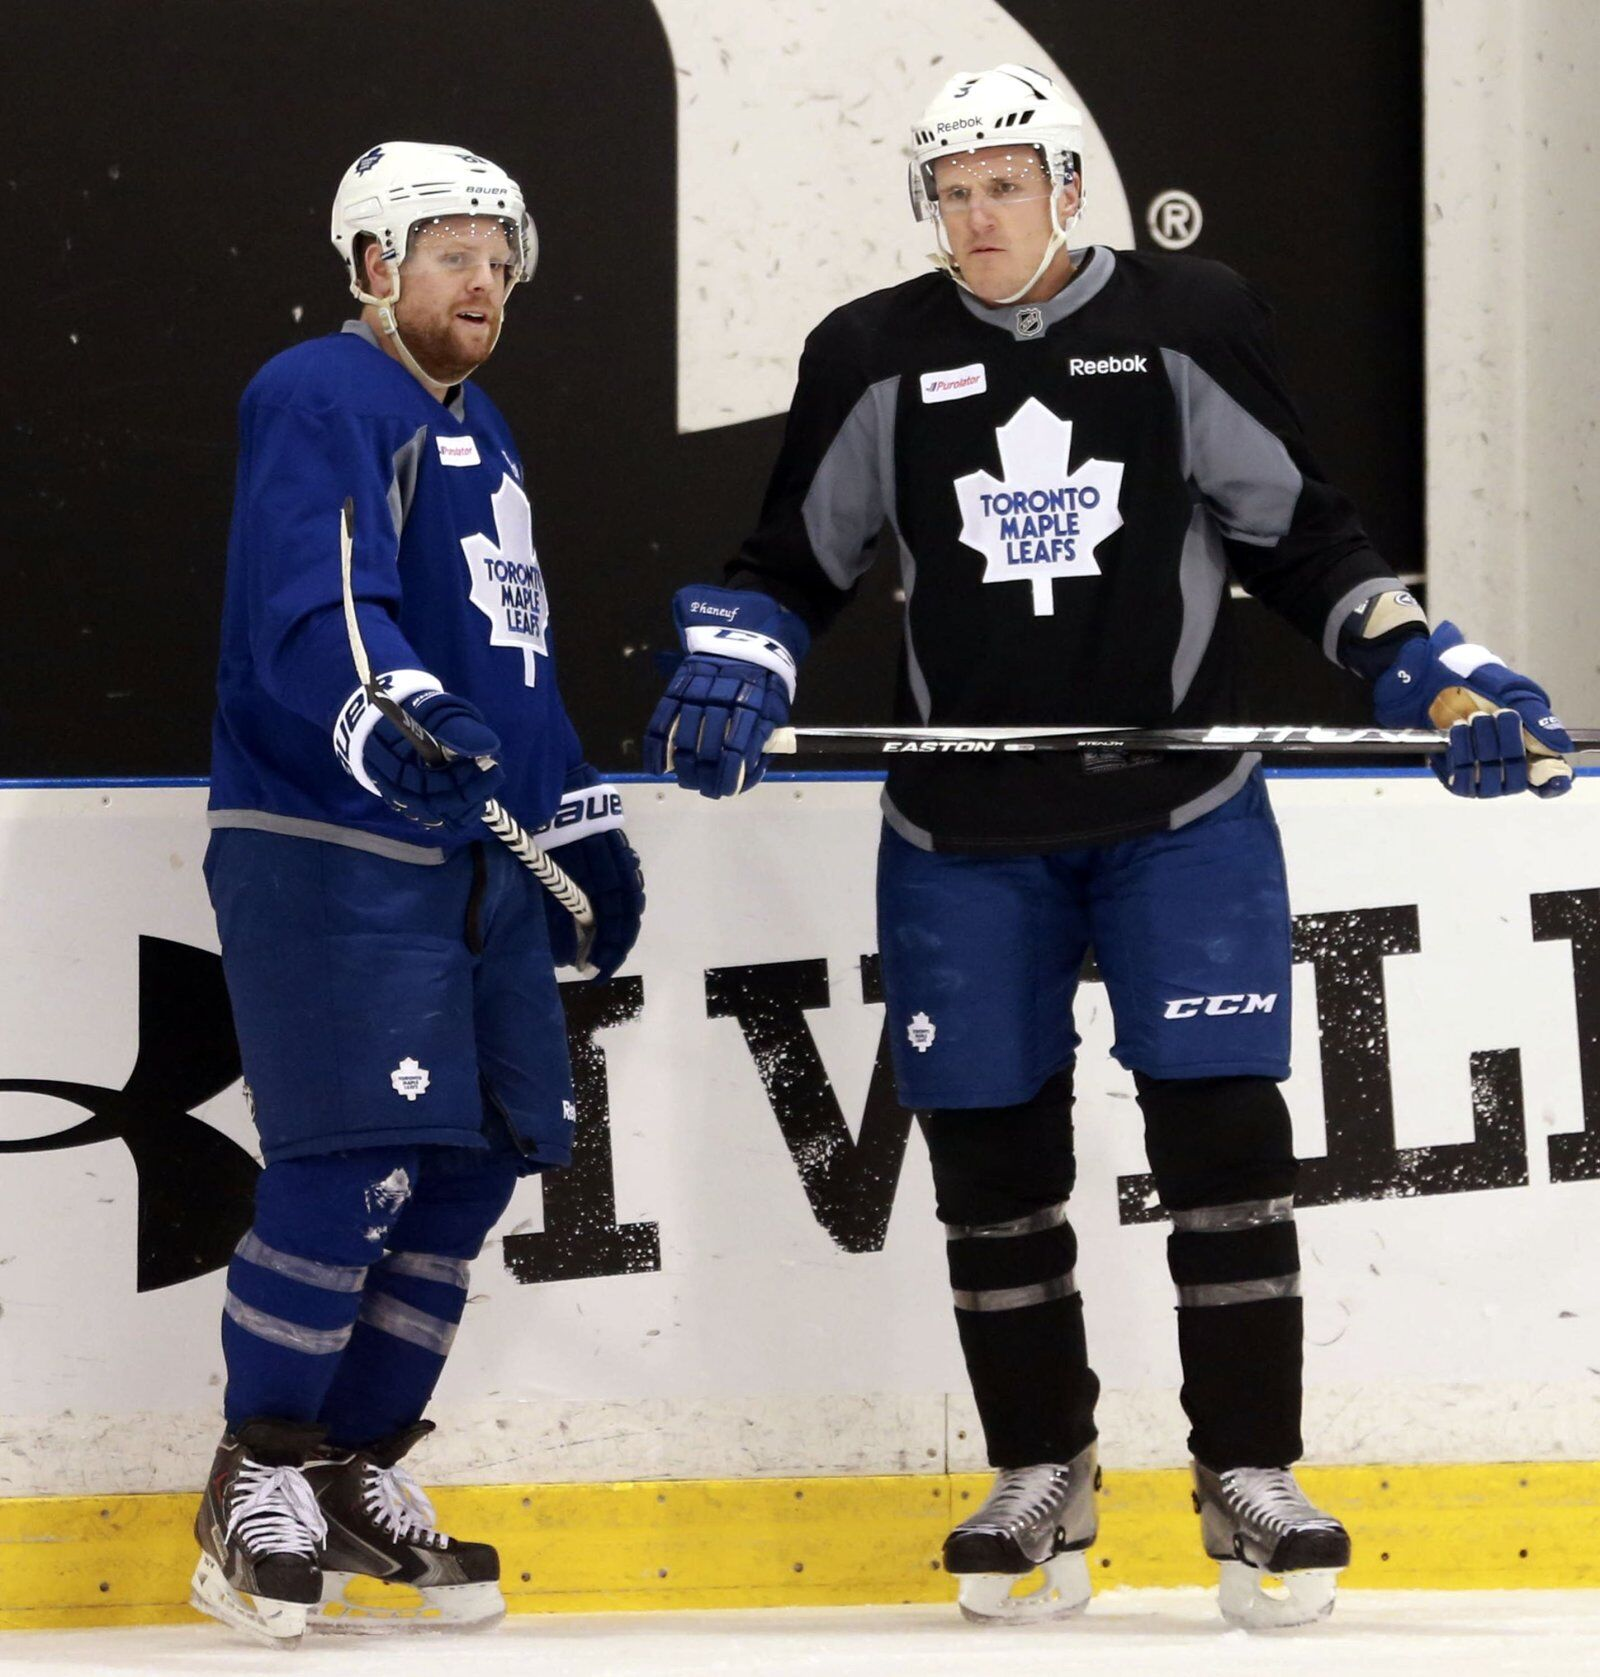 8bd7e50a4f7 Toronto Maple Leafs  Phaneuf and Kessel Deserve Respect